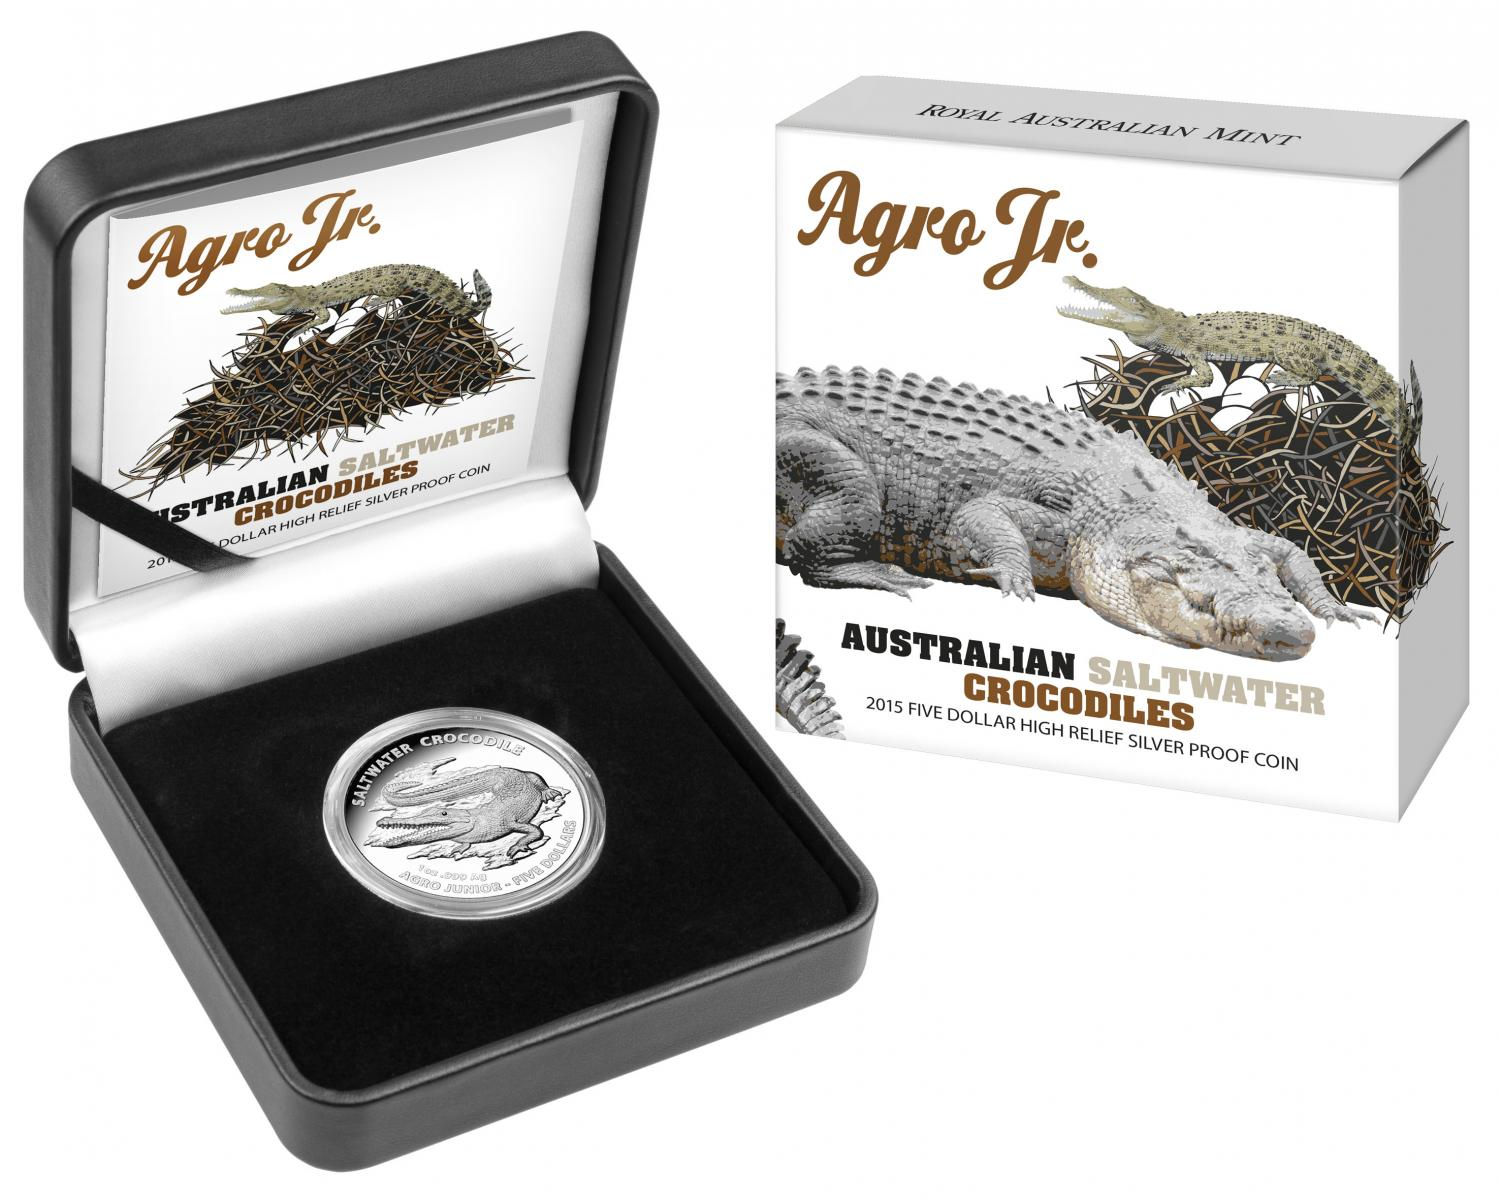 Thumbnail for 2015 $5 High Relief Silver Proof Coin - Saltwater Crocodiles Agro Jr.